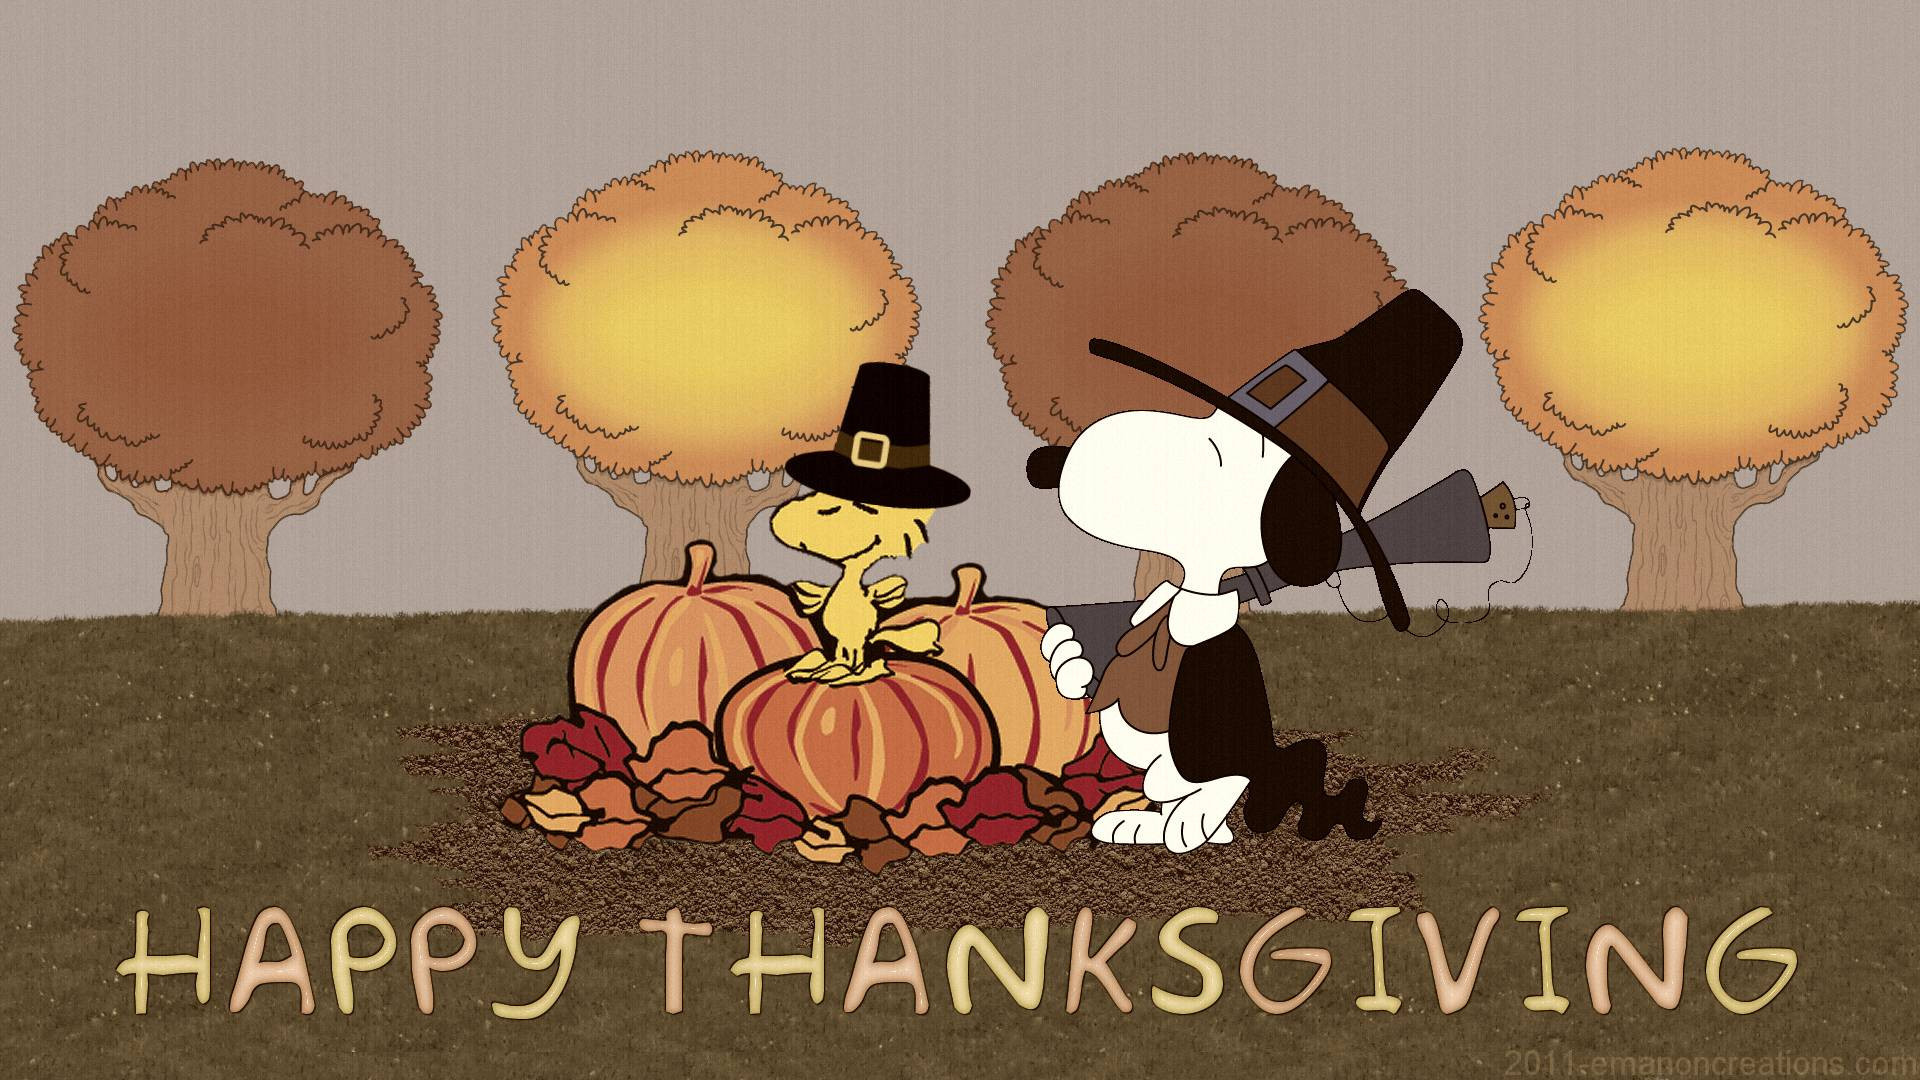 1920x1080 Free Wallpaper Thanksgiving Pictures Great Charlie Brown Thanksgiving  Wallpapers Wallpaper Cave